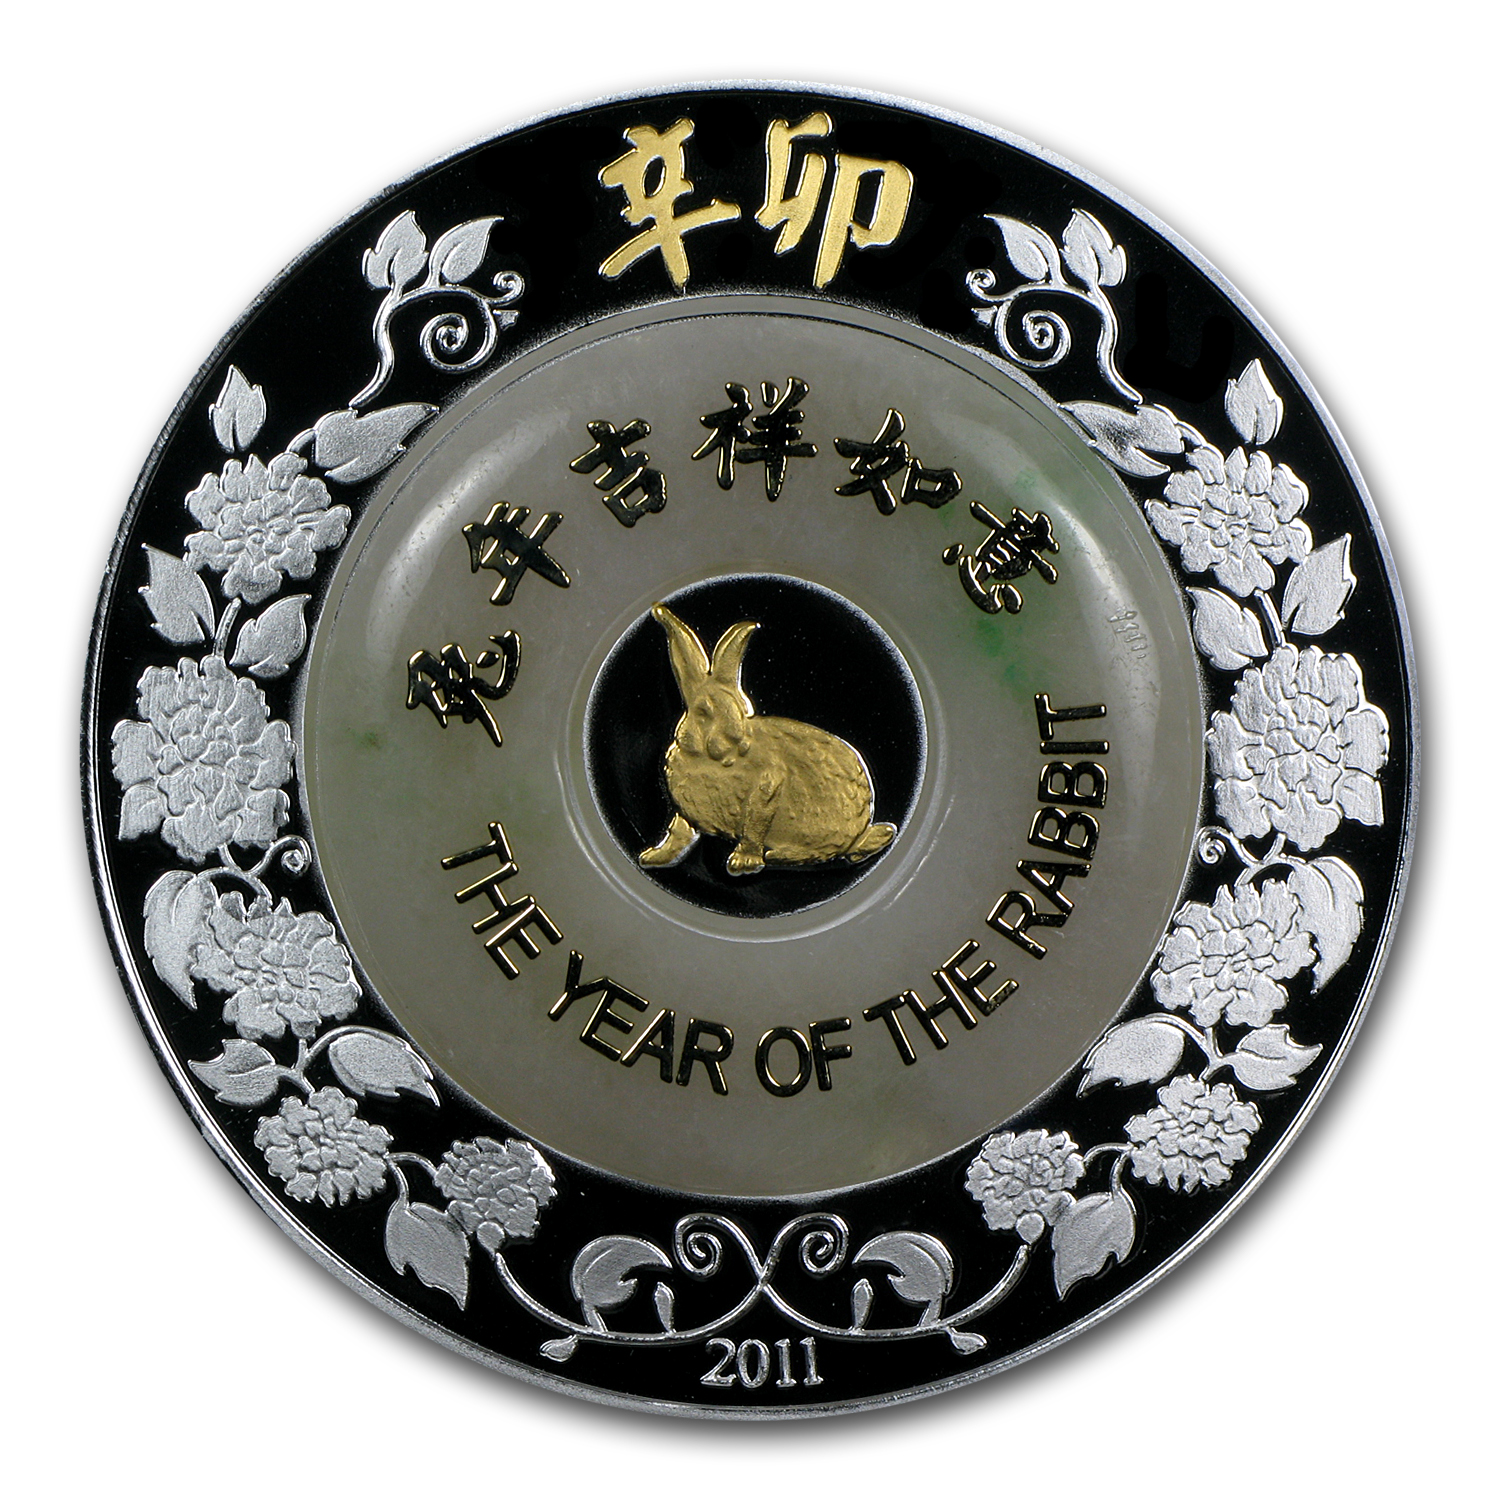 2011 Laos 2 oz Silver & Jade Year of the Rabbit Proof